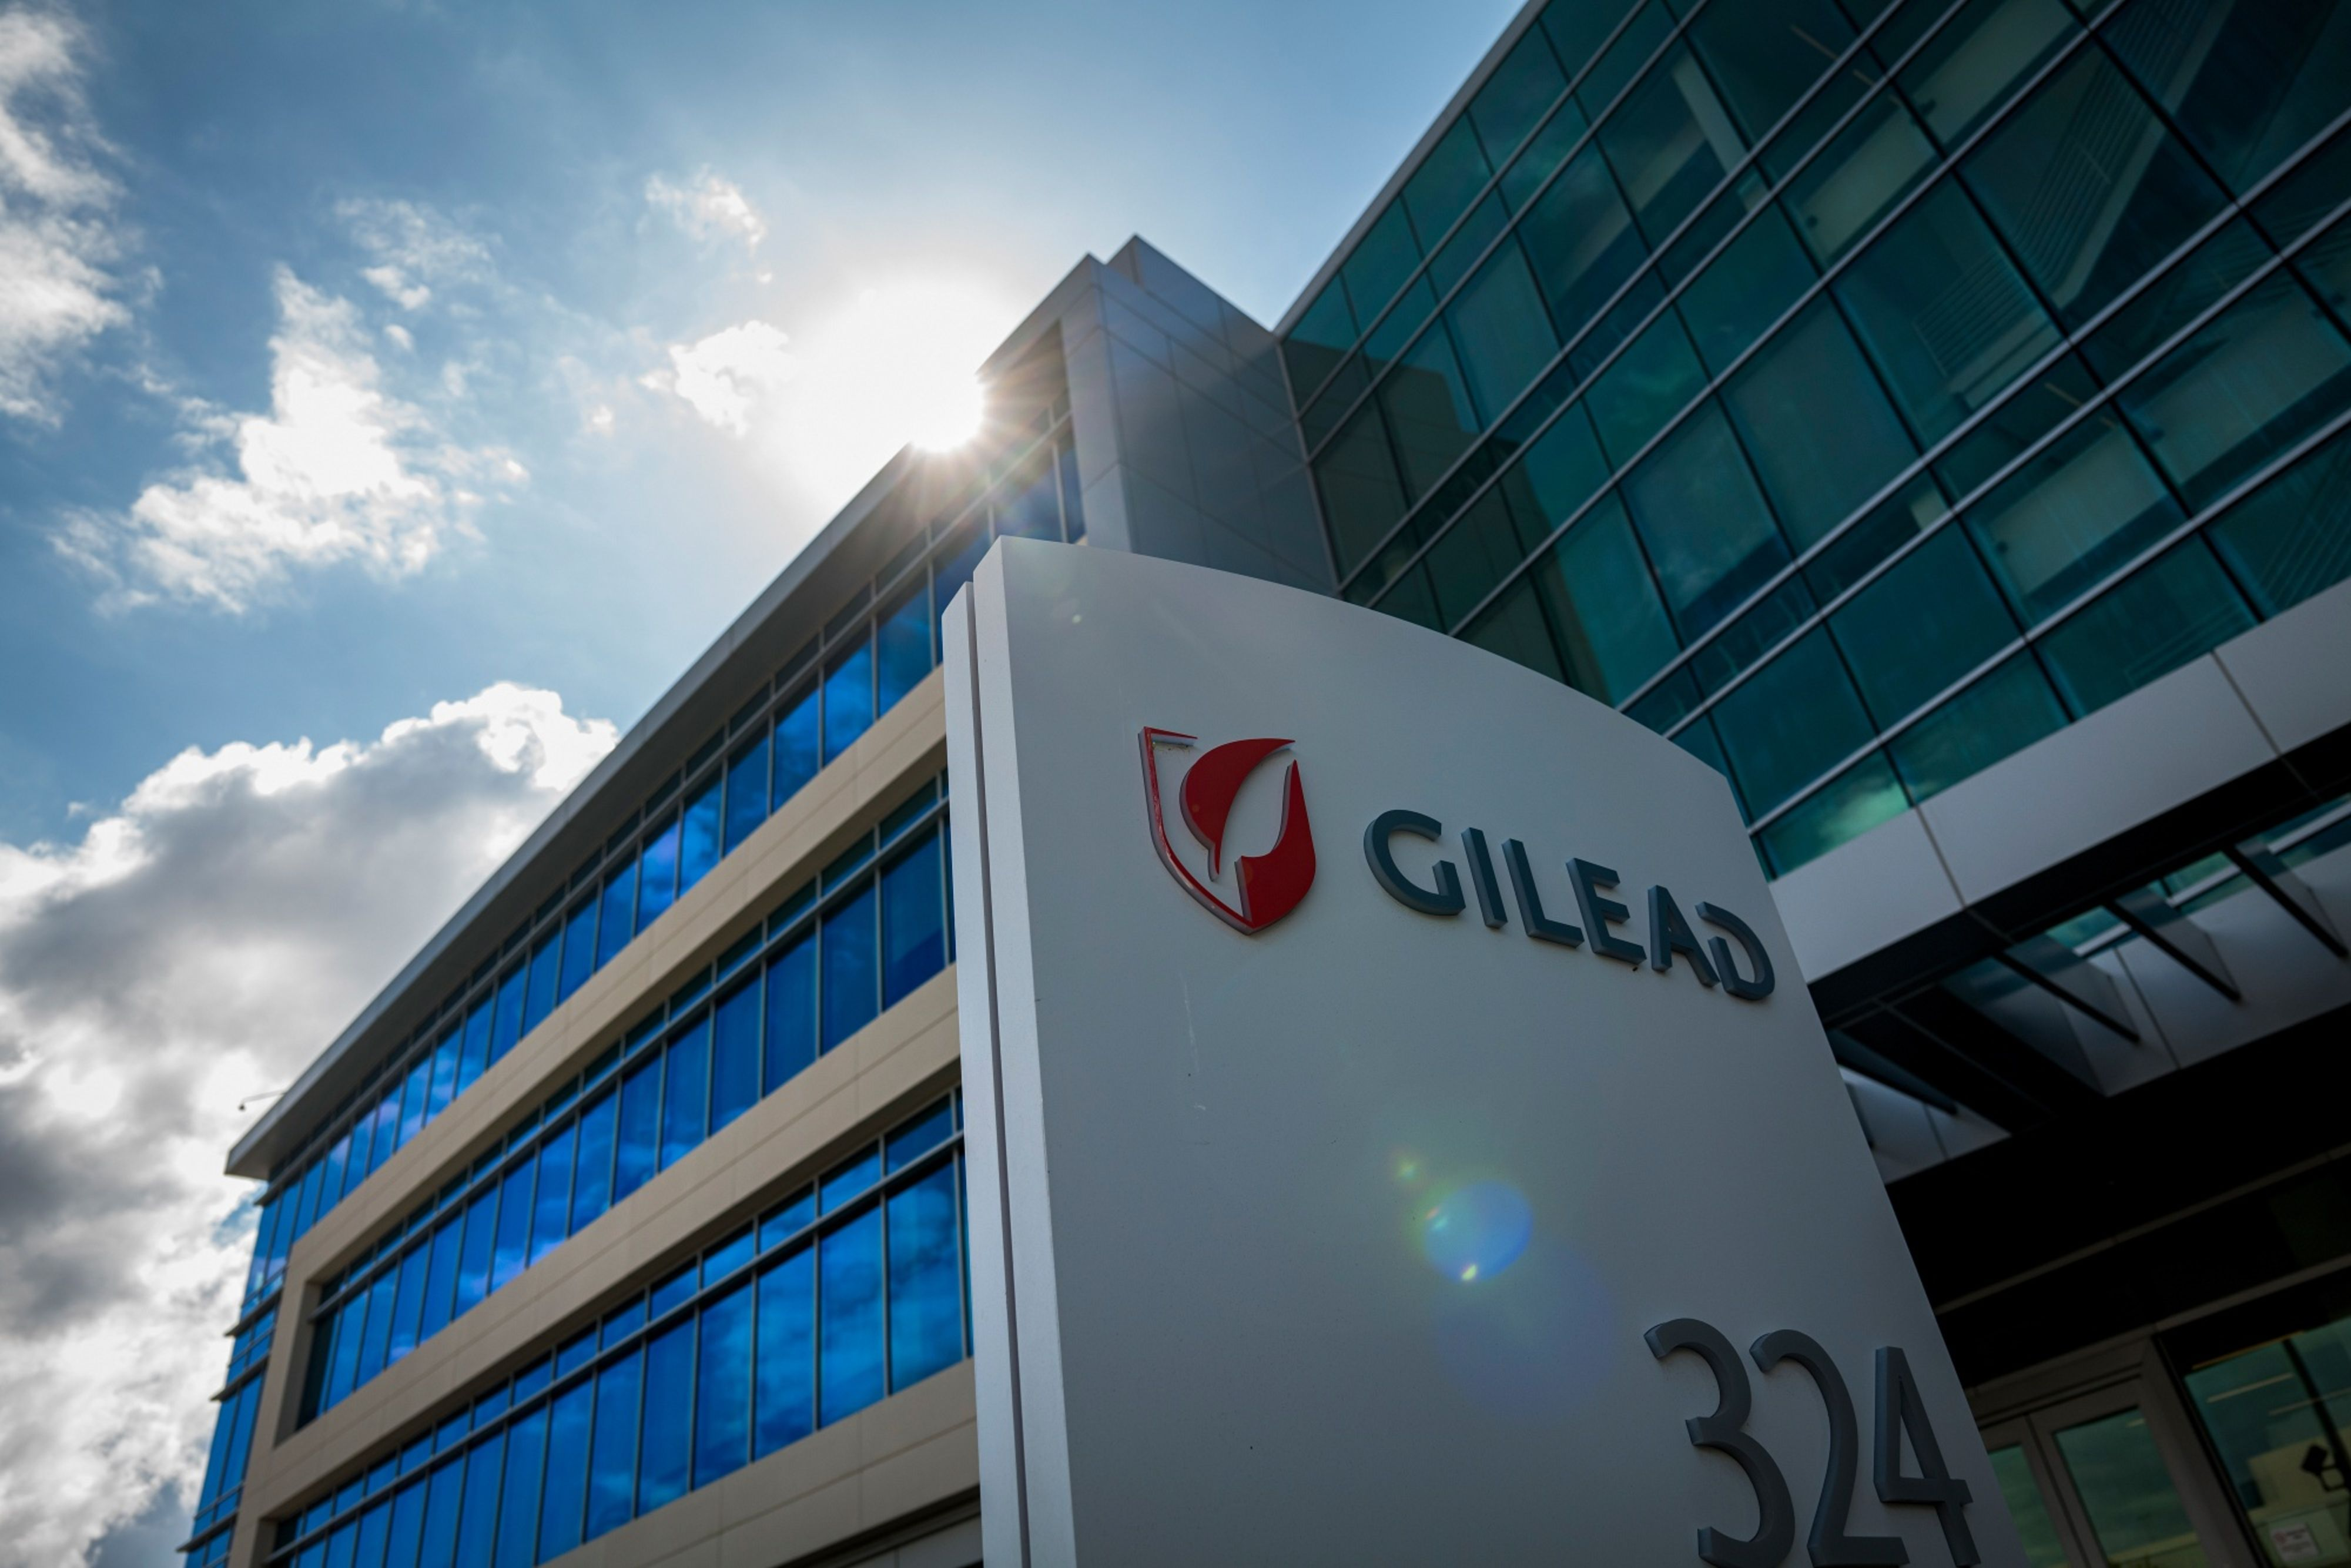 Gilead Sciences' headquarters in Foster City, California. Photo: Bloomberg